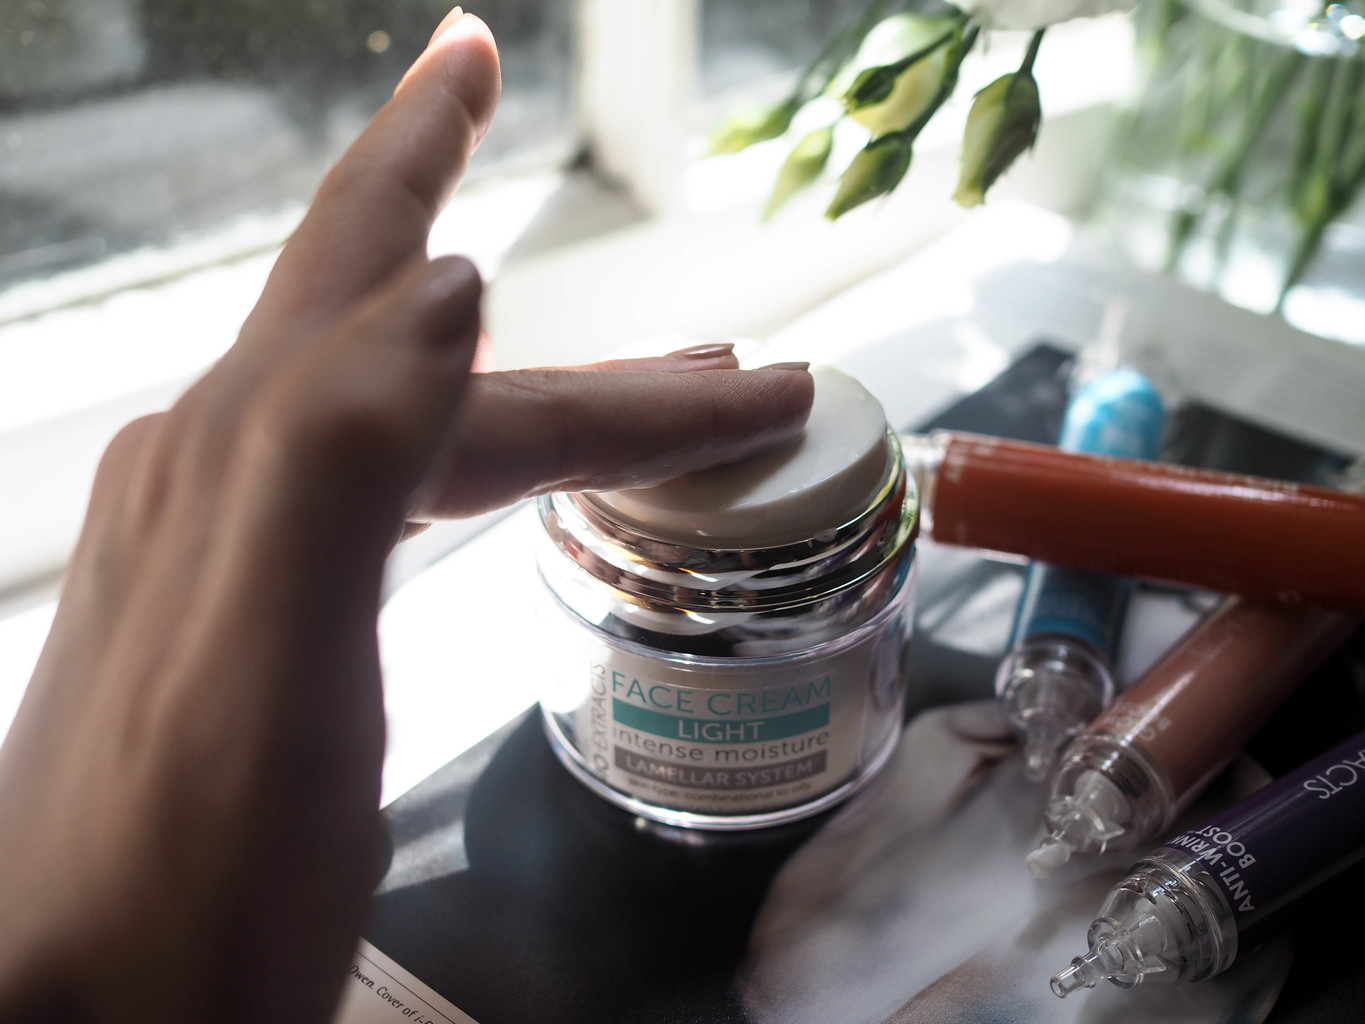 BIO EXTRACTS: AN INNOVATIVE AT-HOME-LAB SKINCARE SYSTEM